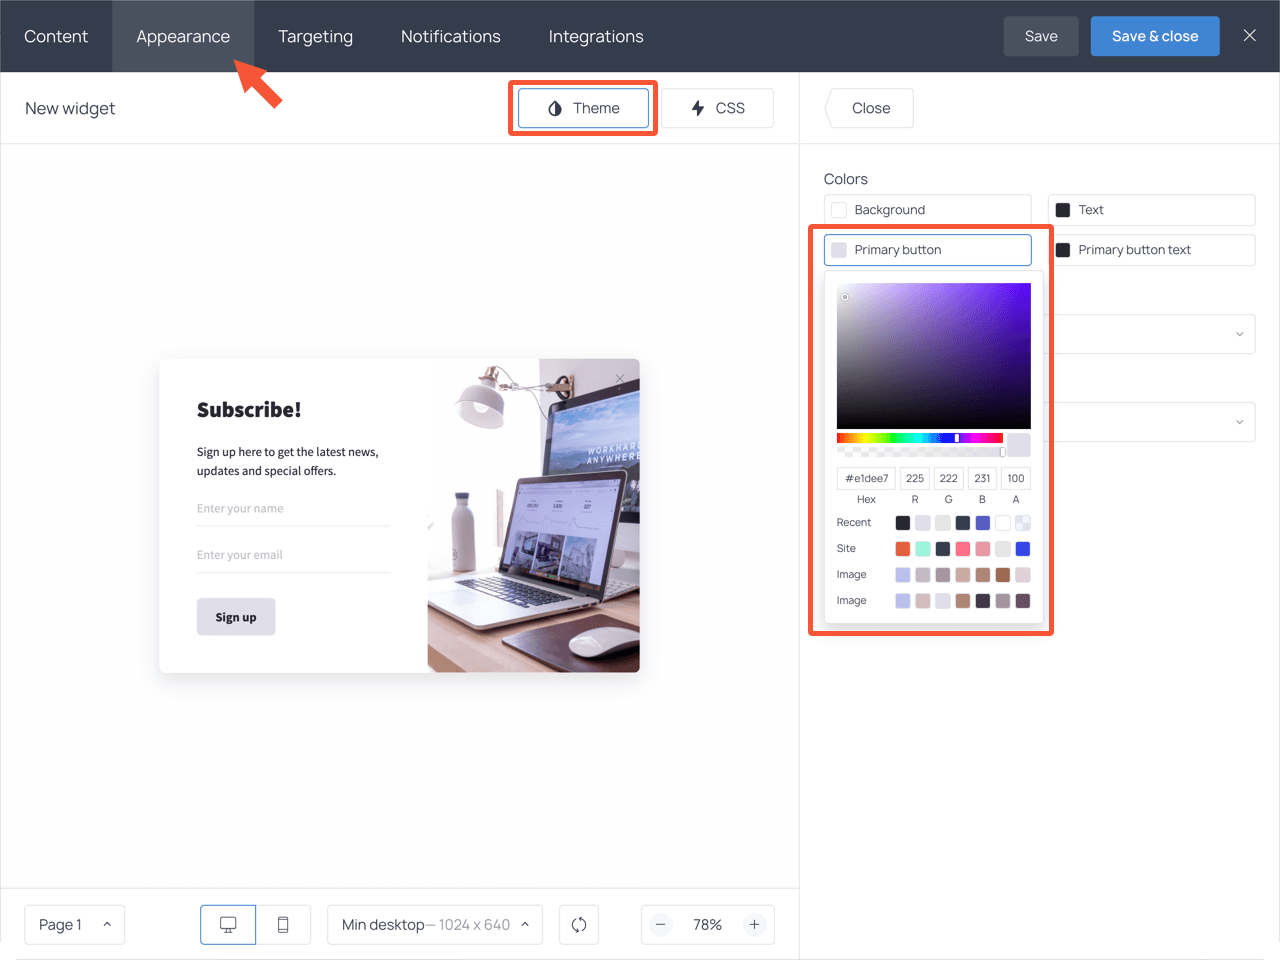 Changing the button color